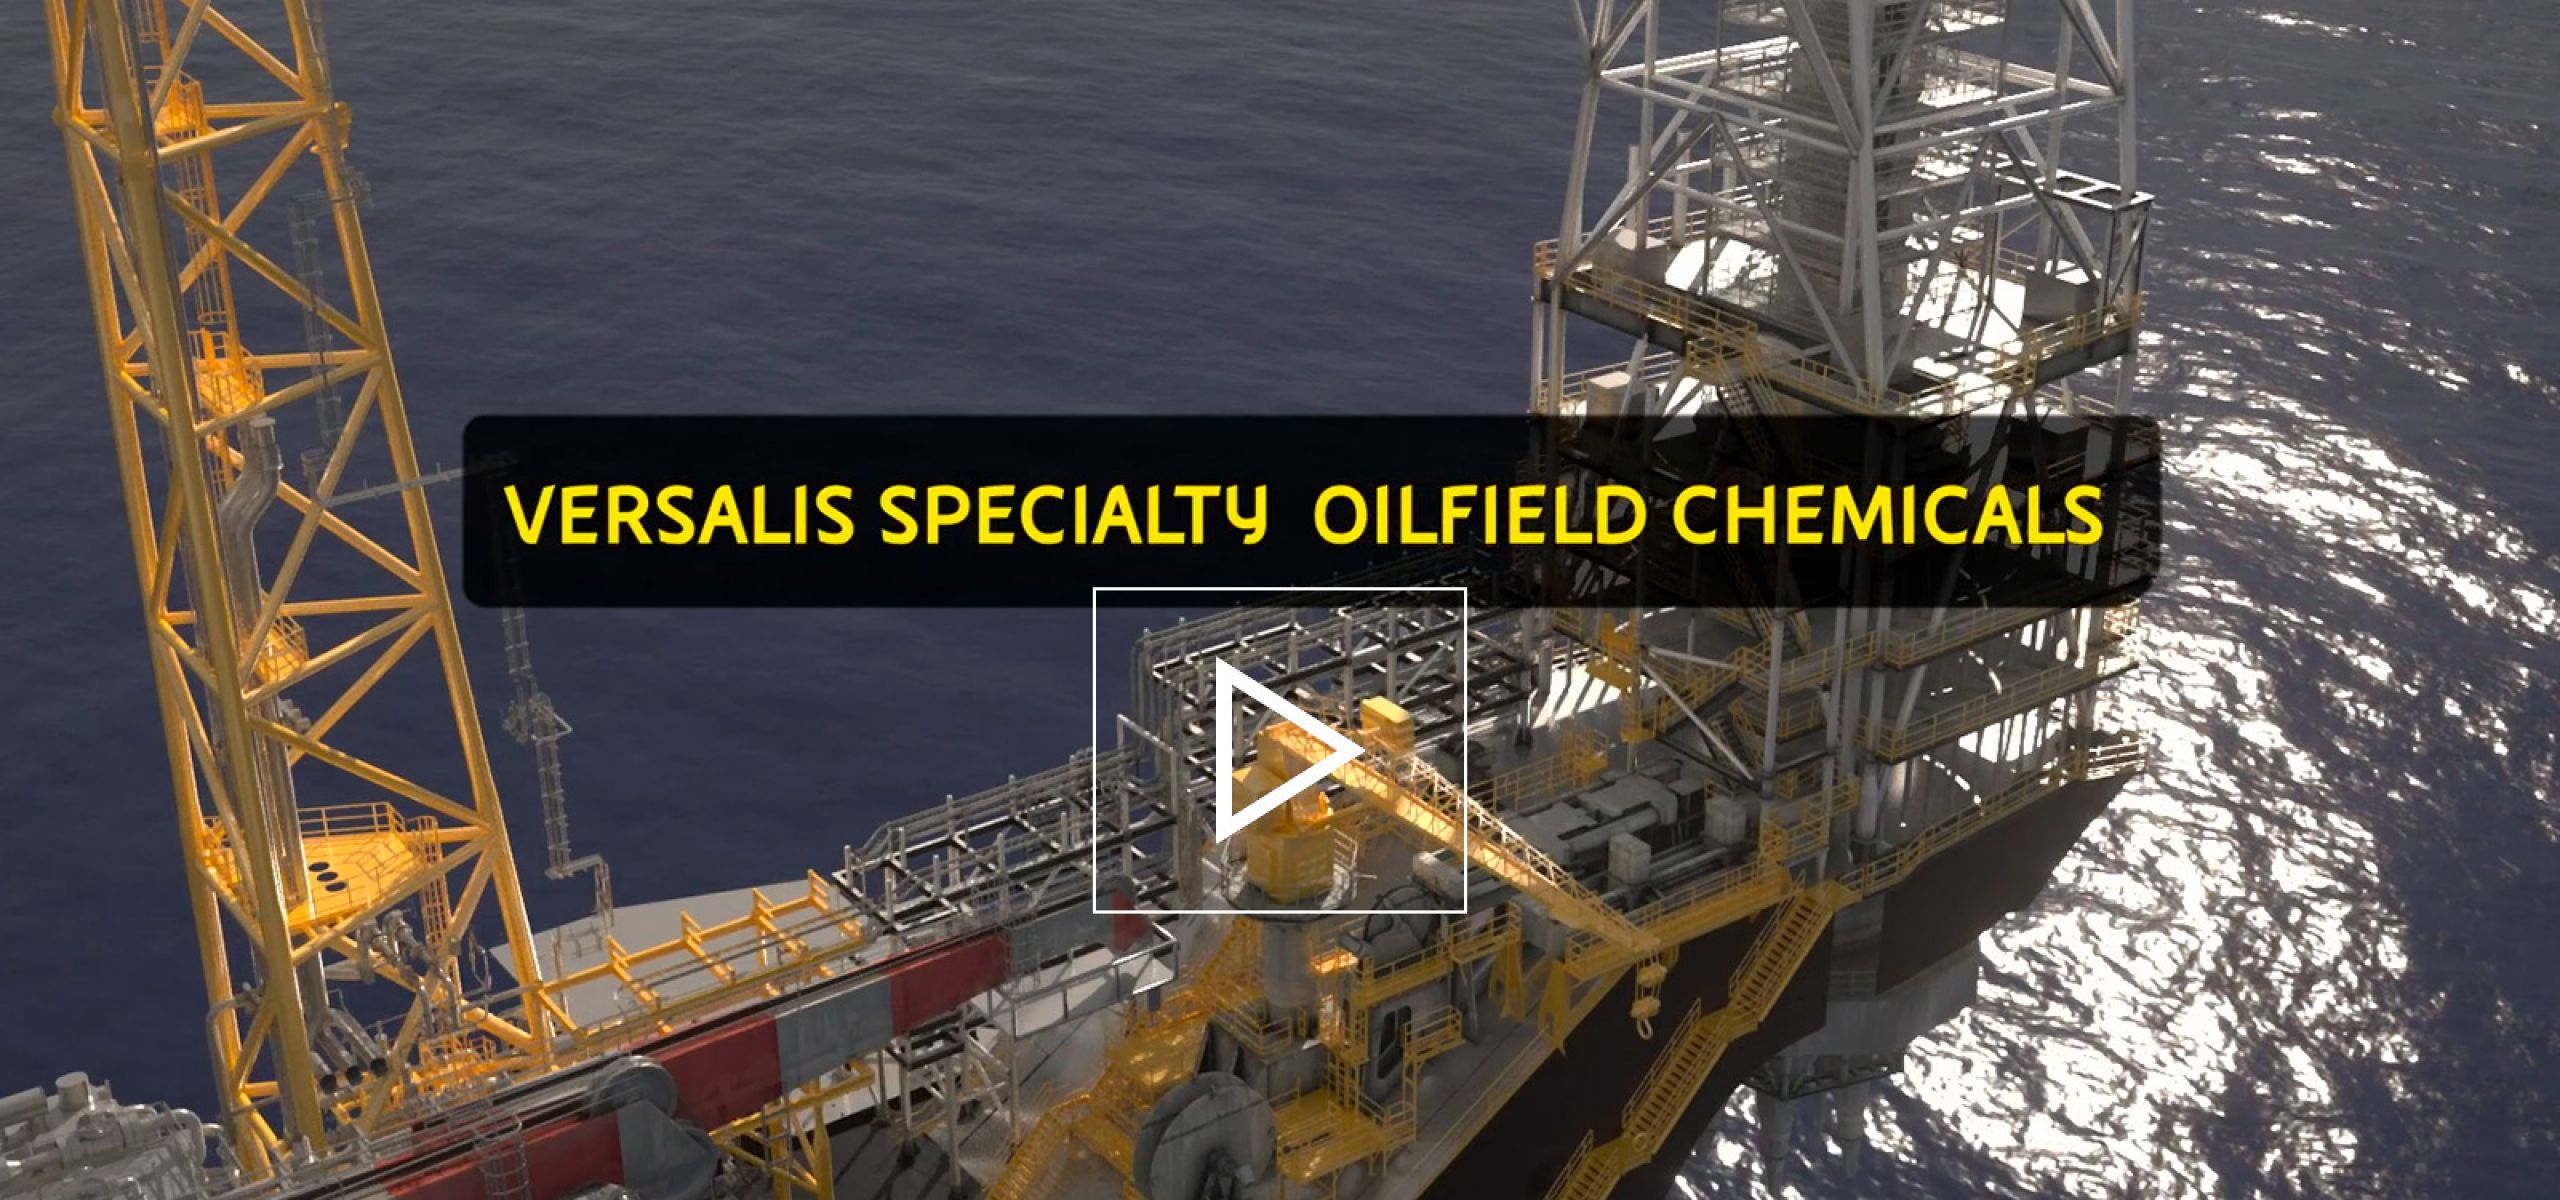 Versalis Specialty Oilfield Chemicals